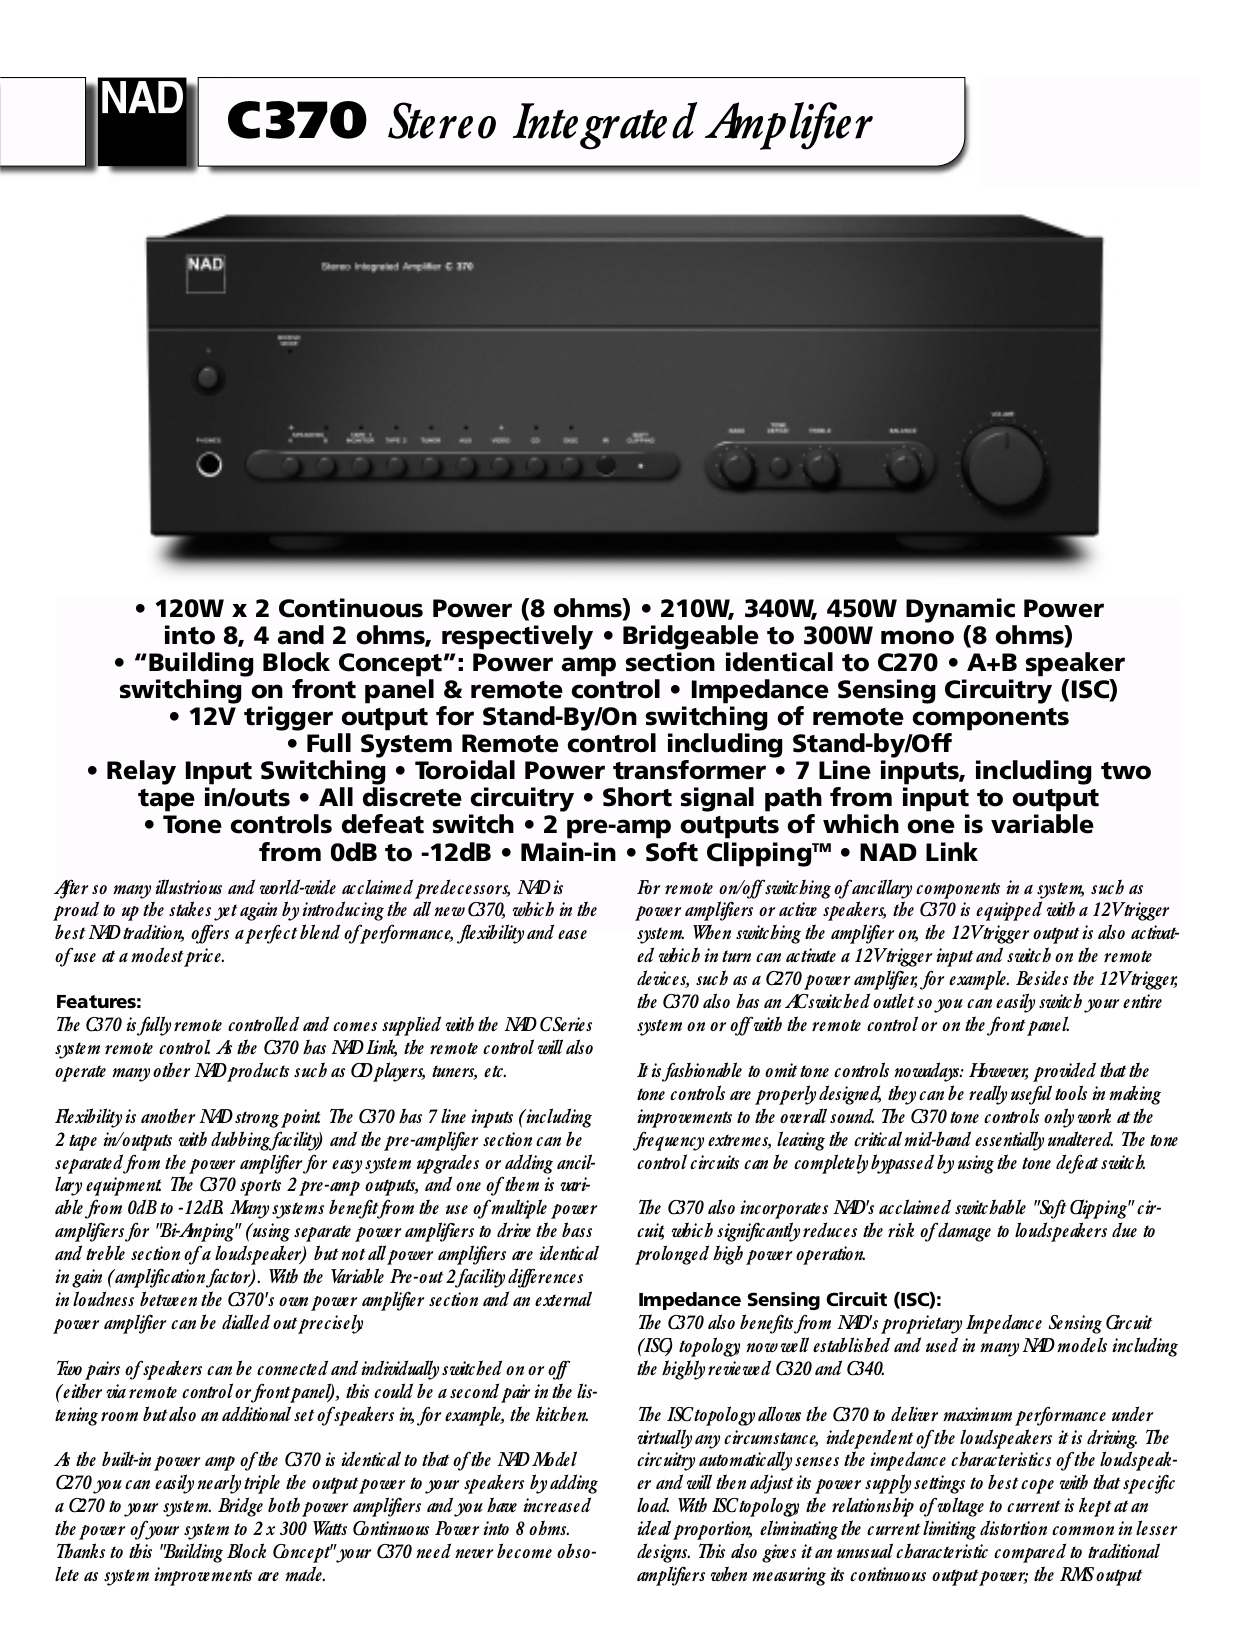 download free pdf for nad c370 amp manual rh umlib com nad c 370 review nad c 370 review